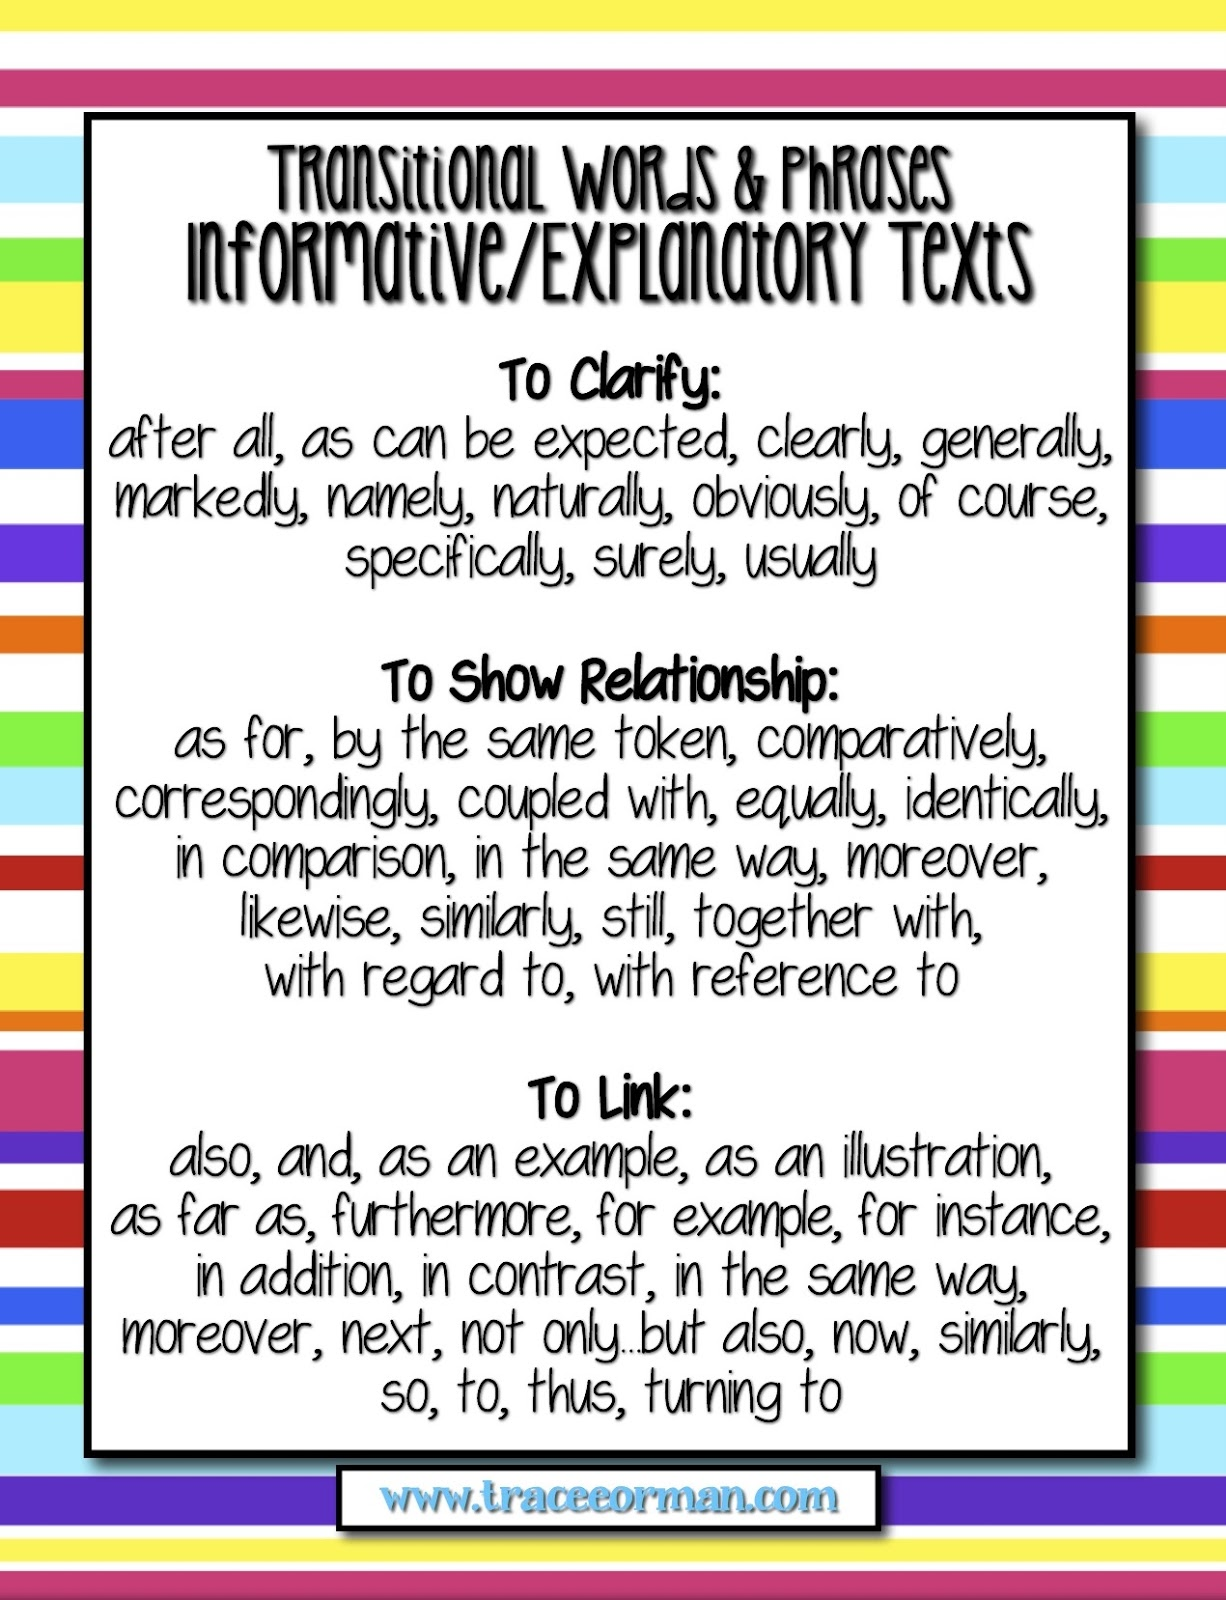 Mrs Ormans Classroom Common Core Tips Using Transitional Words TransitionsInformativeExplanatoryCCSS Common Core Tips Using Transitional